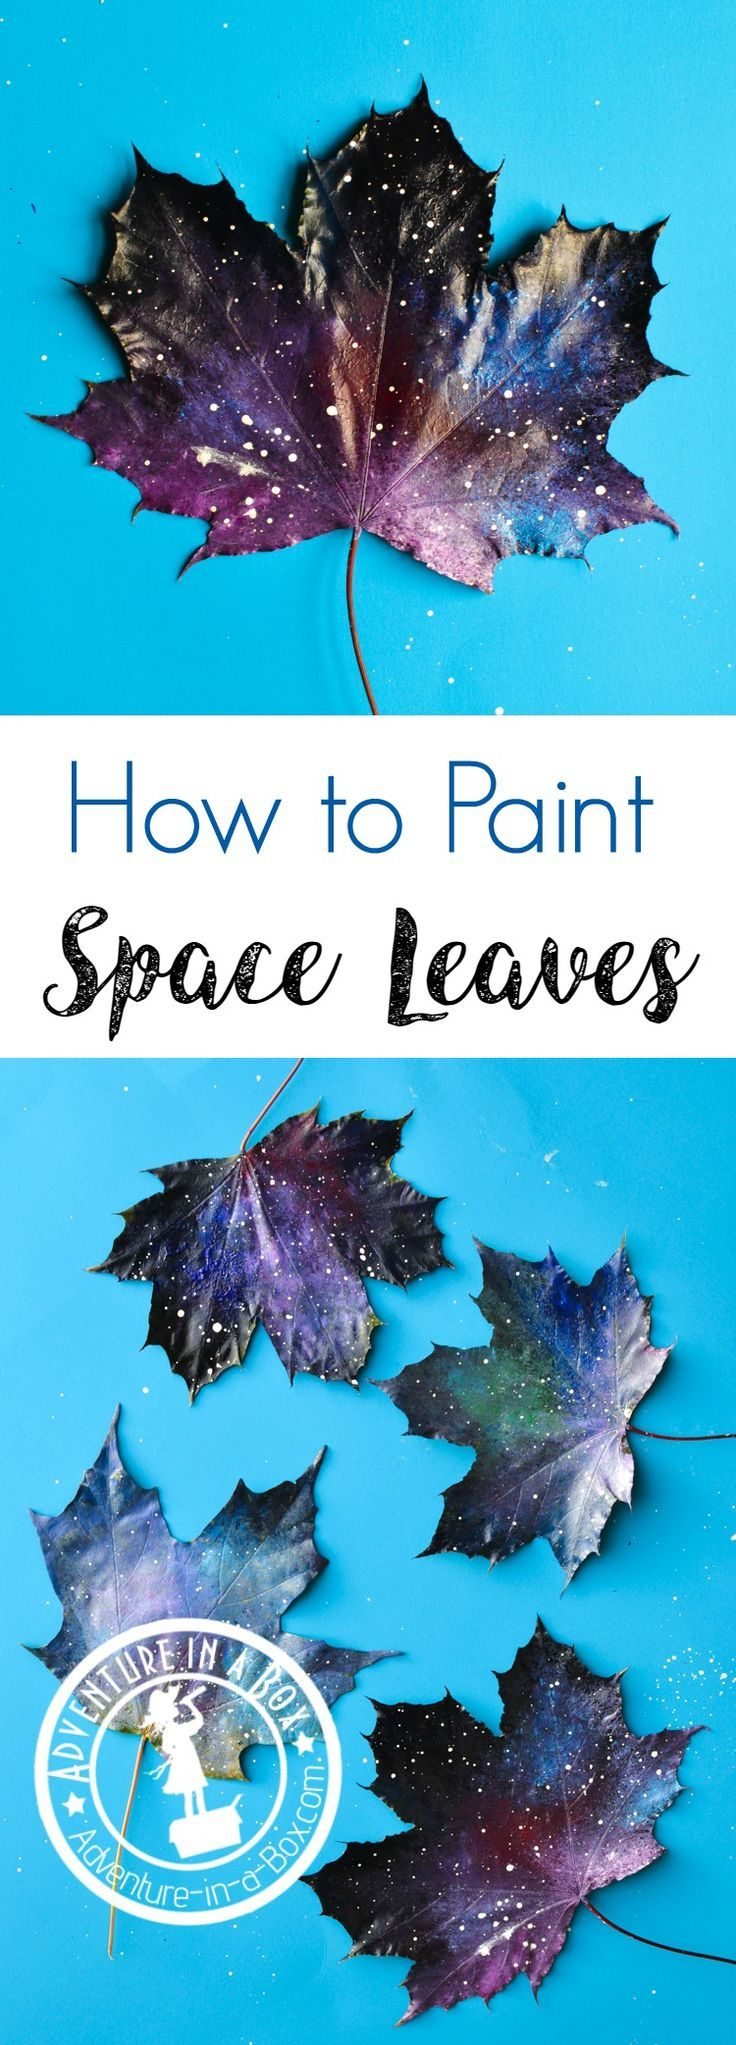 Painting Space Leaves with a Sponge